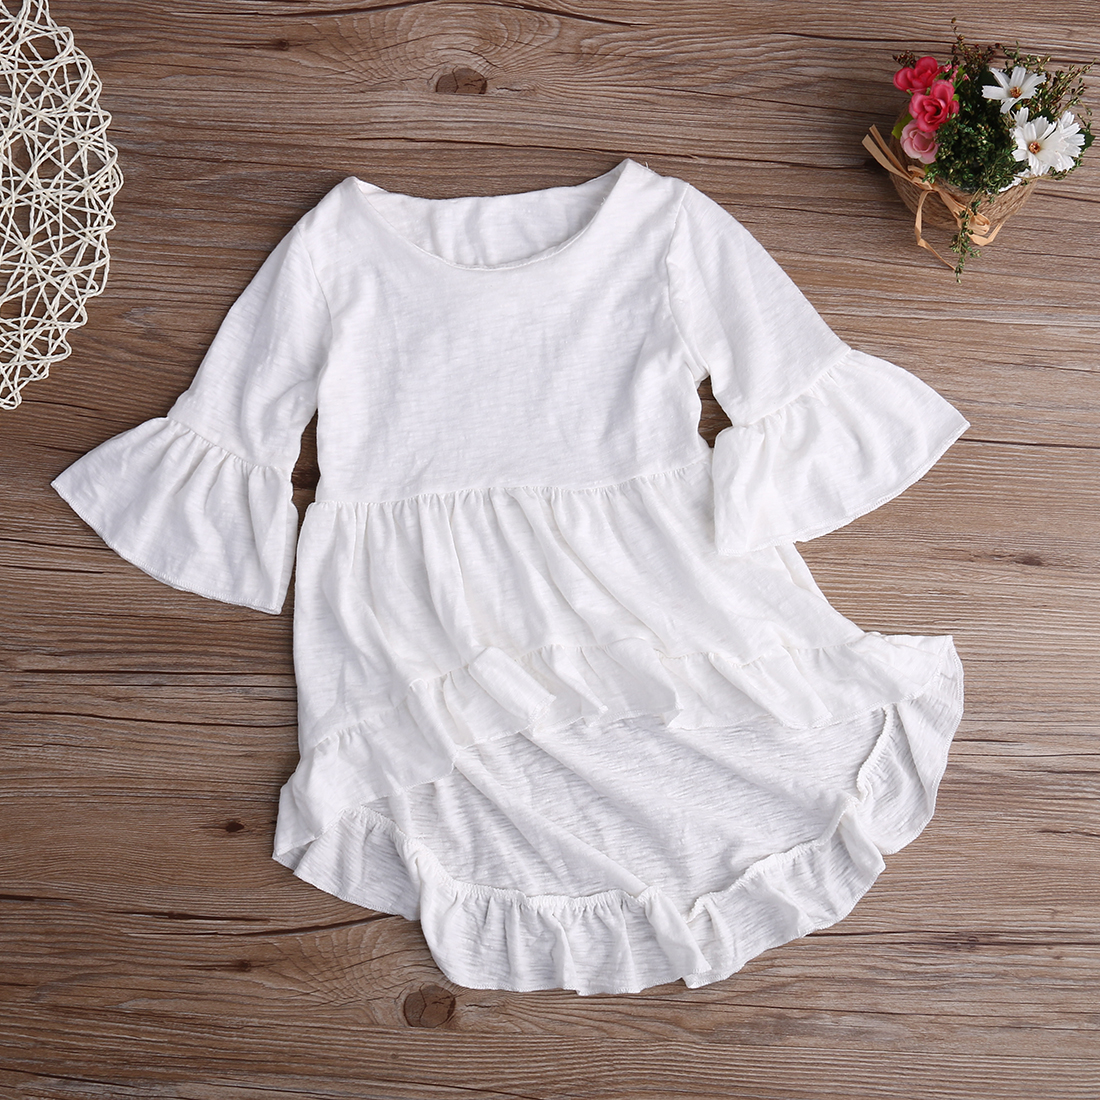 White Baby Girls Dress Frills Flare Sleeve Top T-Shirt Party Ruffles Hem Dresses 1-6Y цена